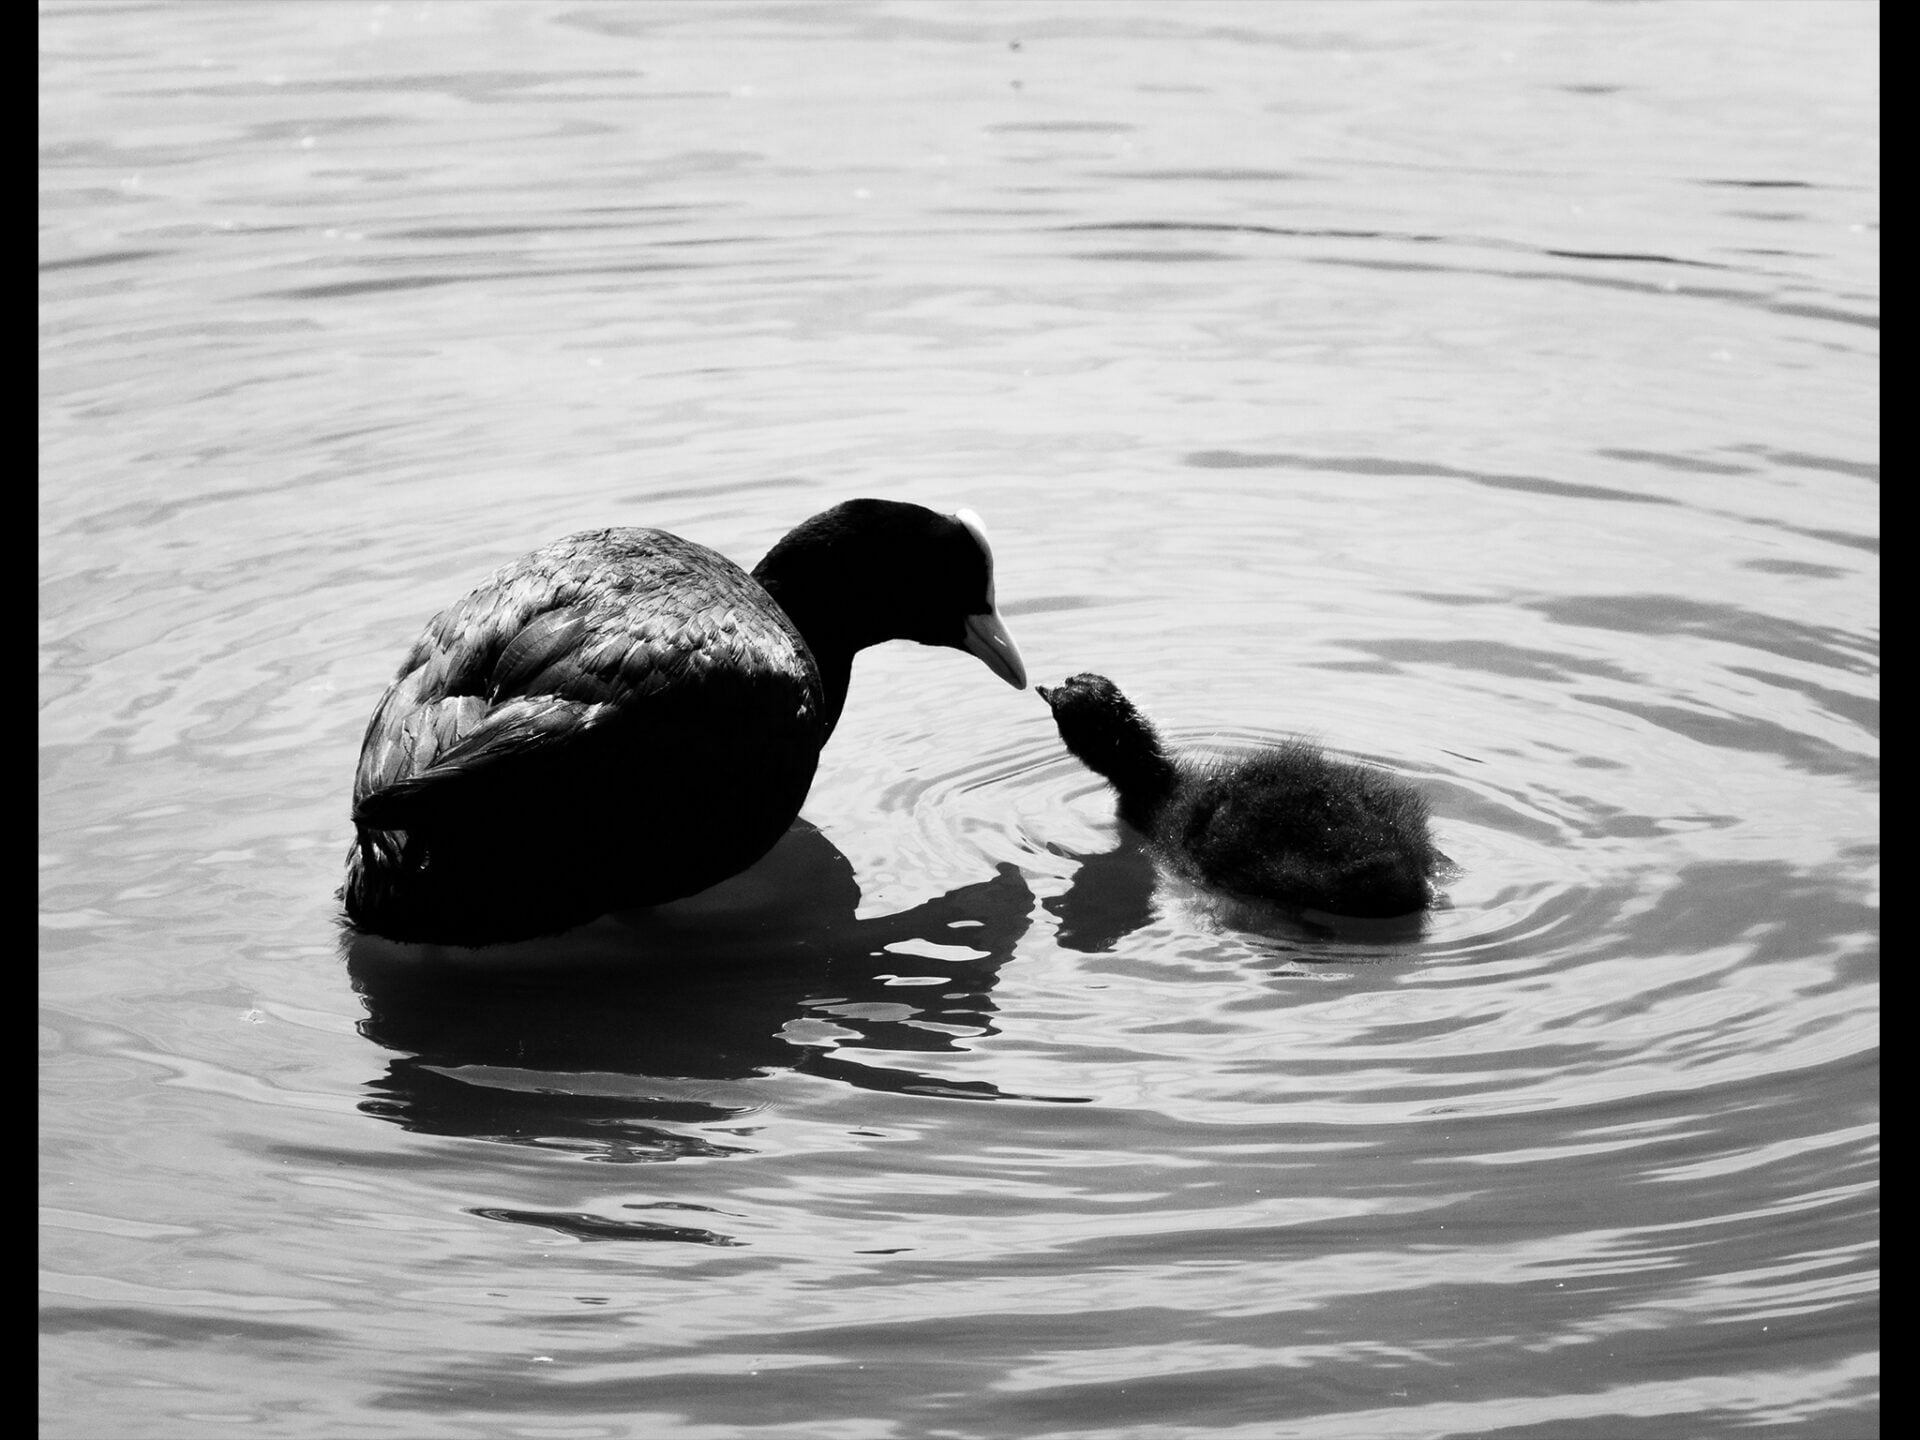 black and white image of a mother and baby bird seemingly kissing